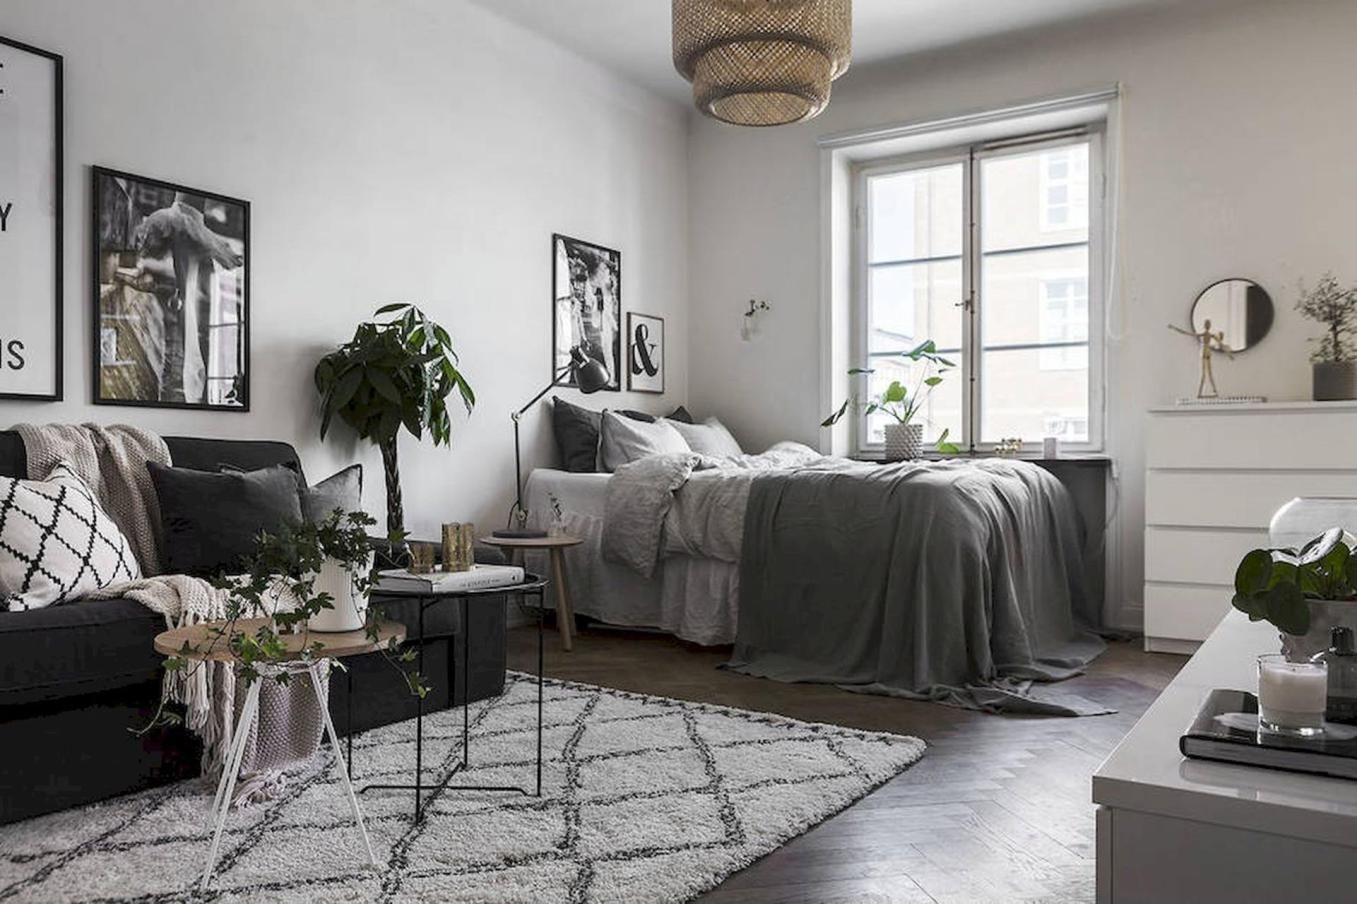 51 Cozy Studio Apartment Decorating On A Budget Ideas Apartment